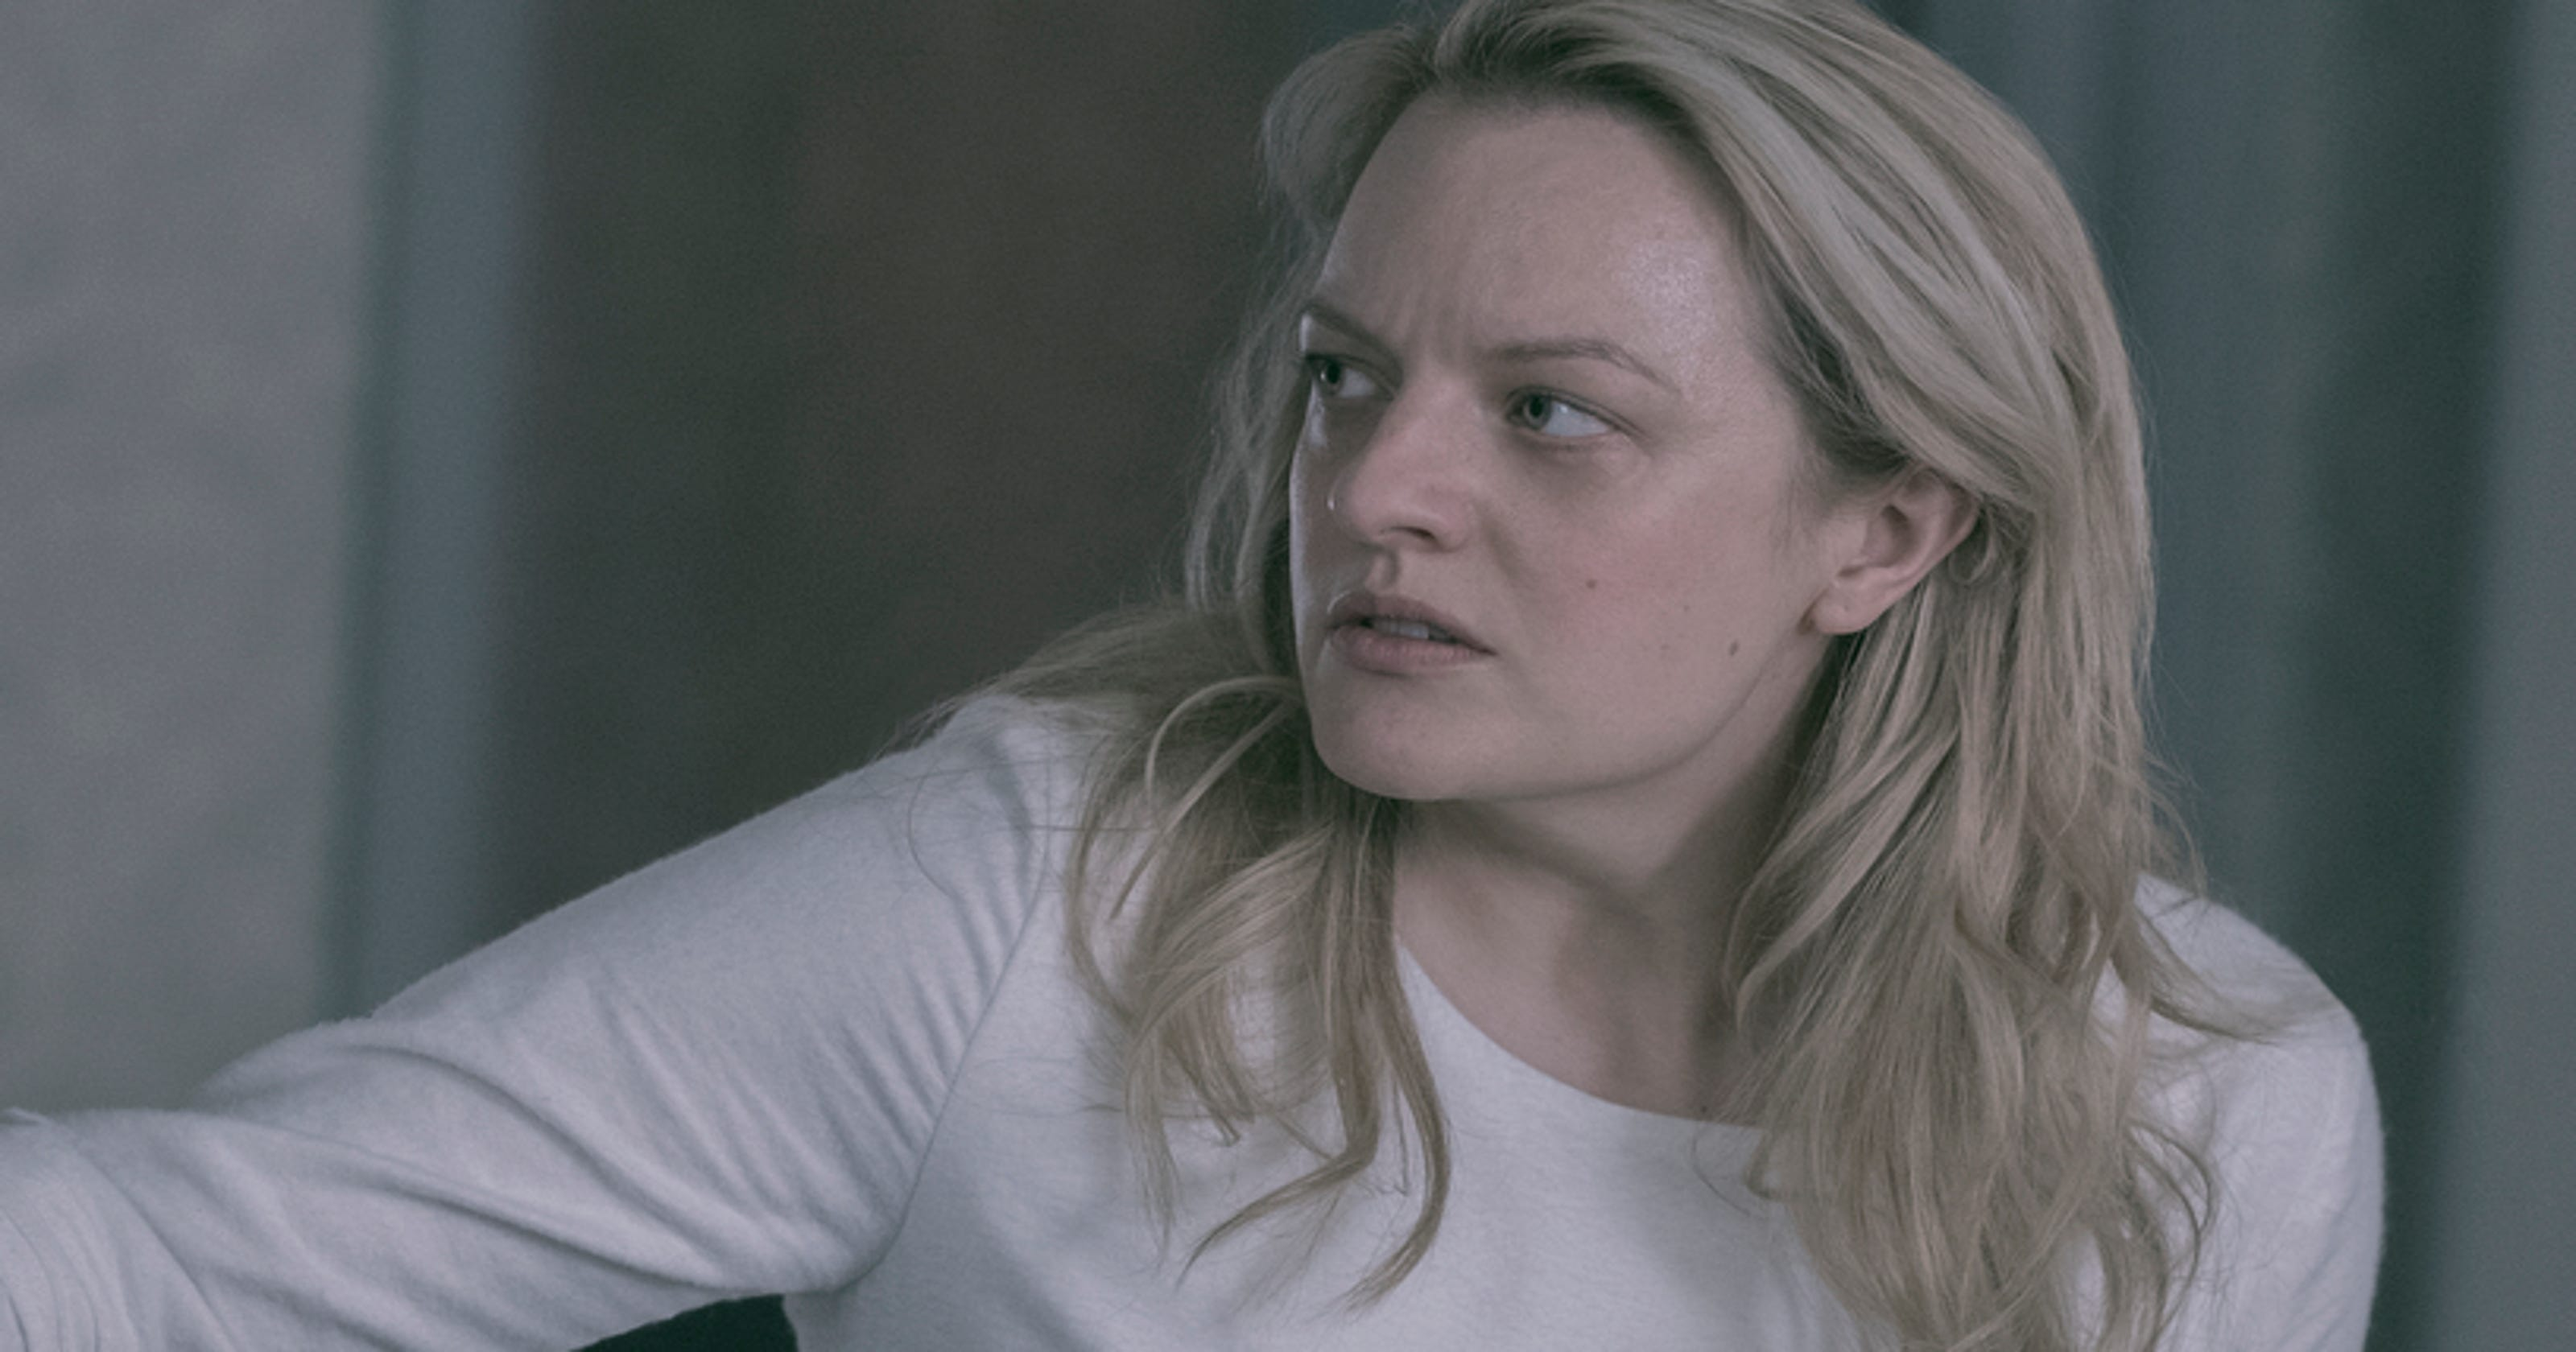 The Handmaid's Tale' recap: How much more can we take?